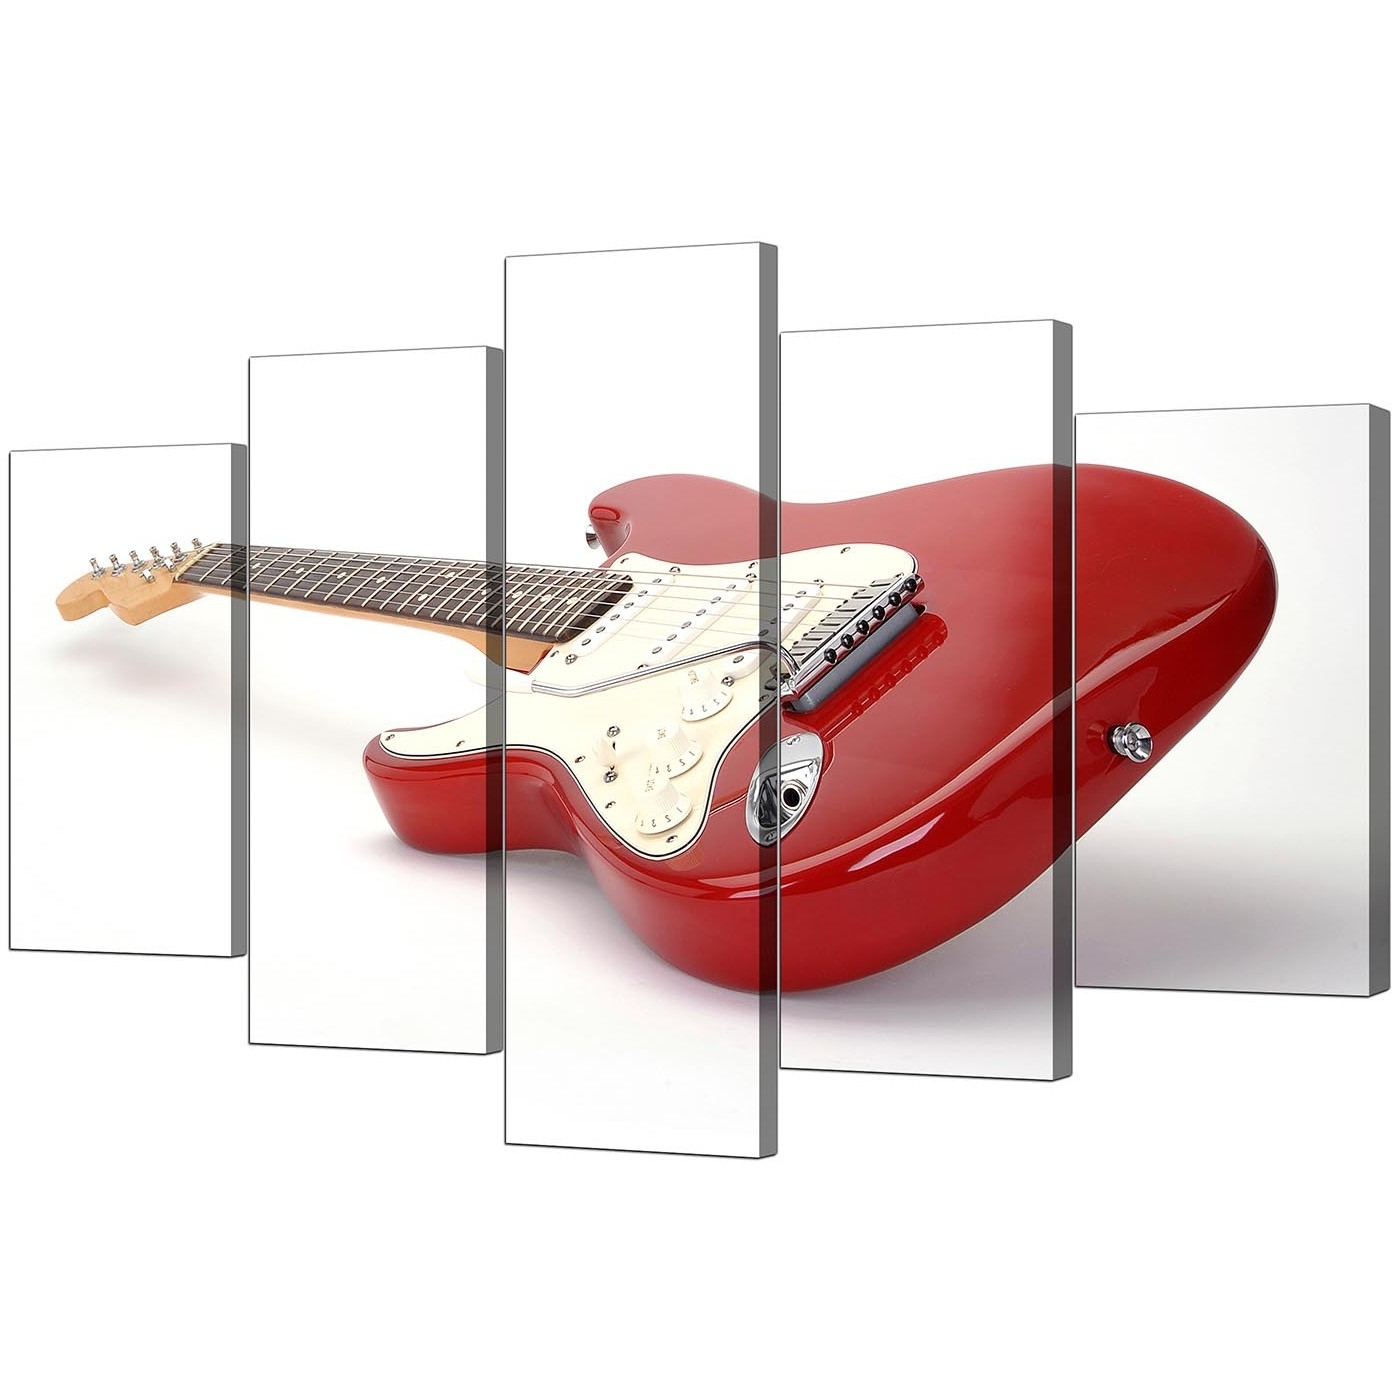 Most Popular Extra Large Guitar Canvas Wall Art 5 Panel In Red In Guitar Canvas Wall Art (View 9 of 15)